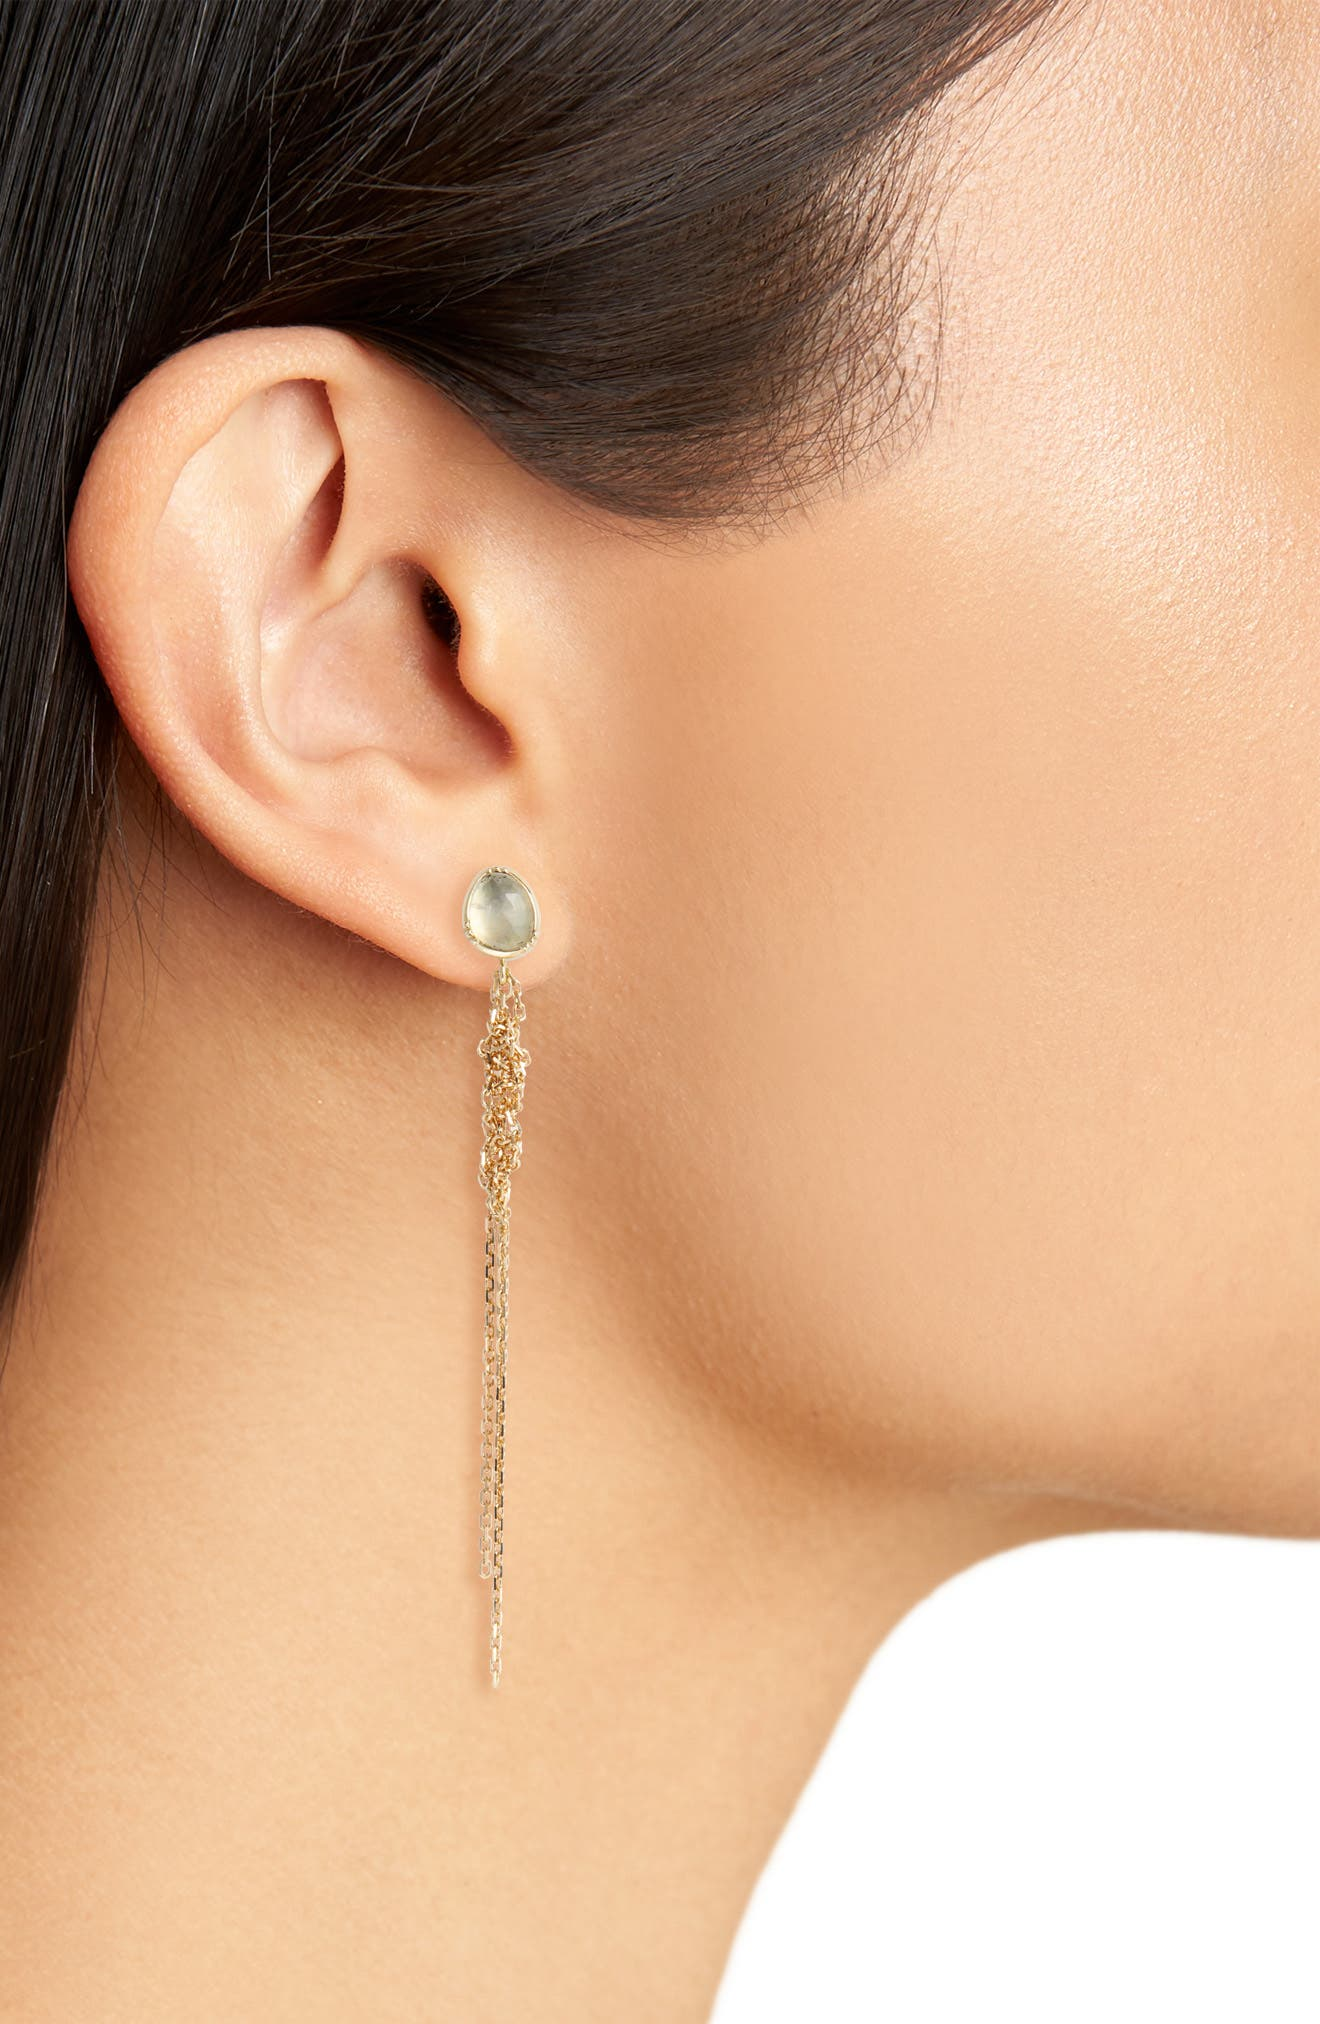 Waterfall Moonstone Earrings,                             Alternate thumbnail 2, color,                             GOLD